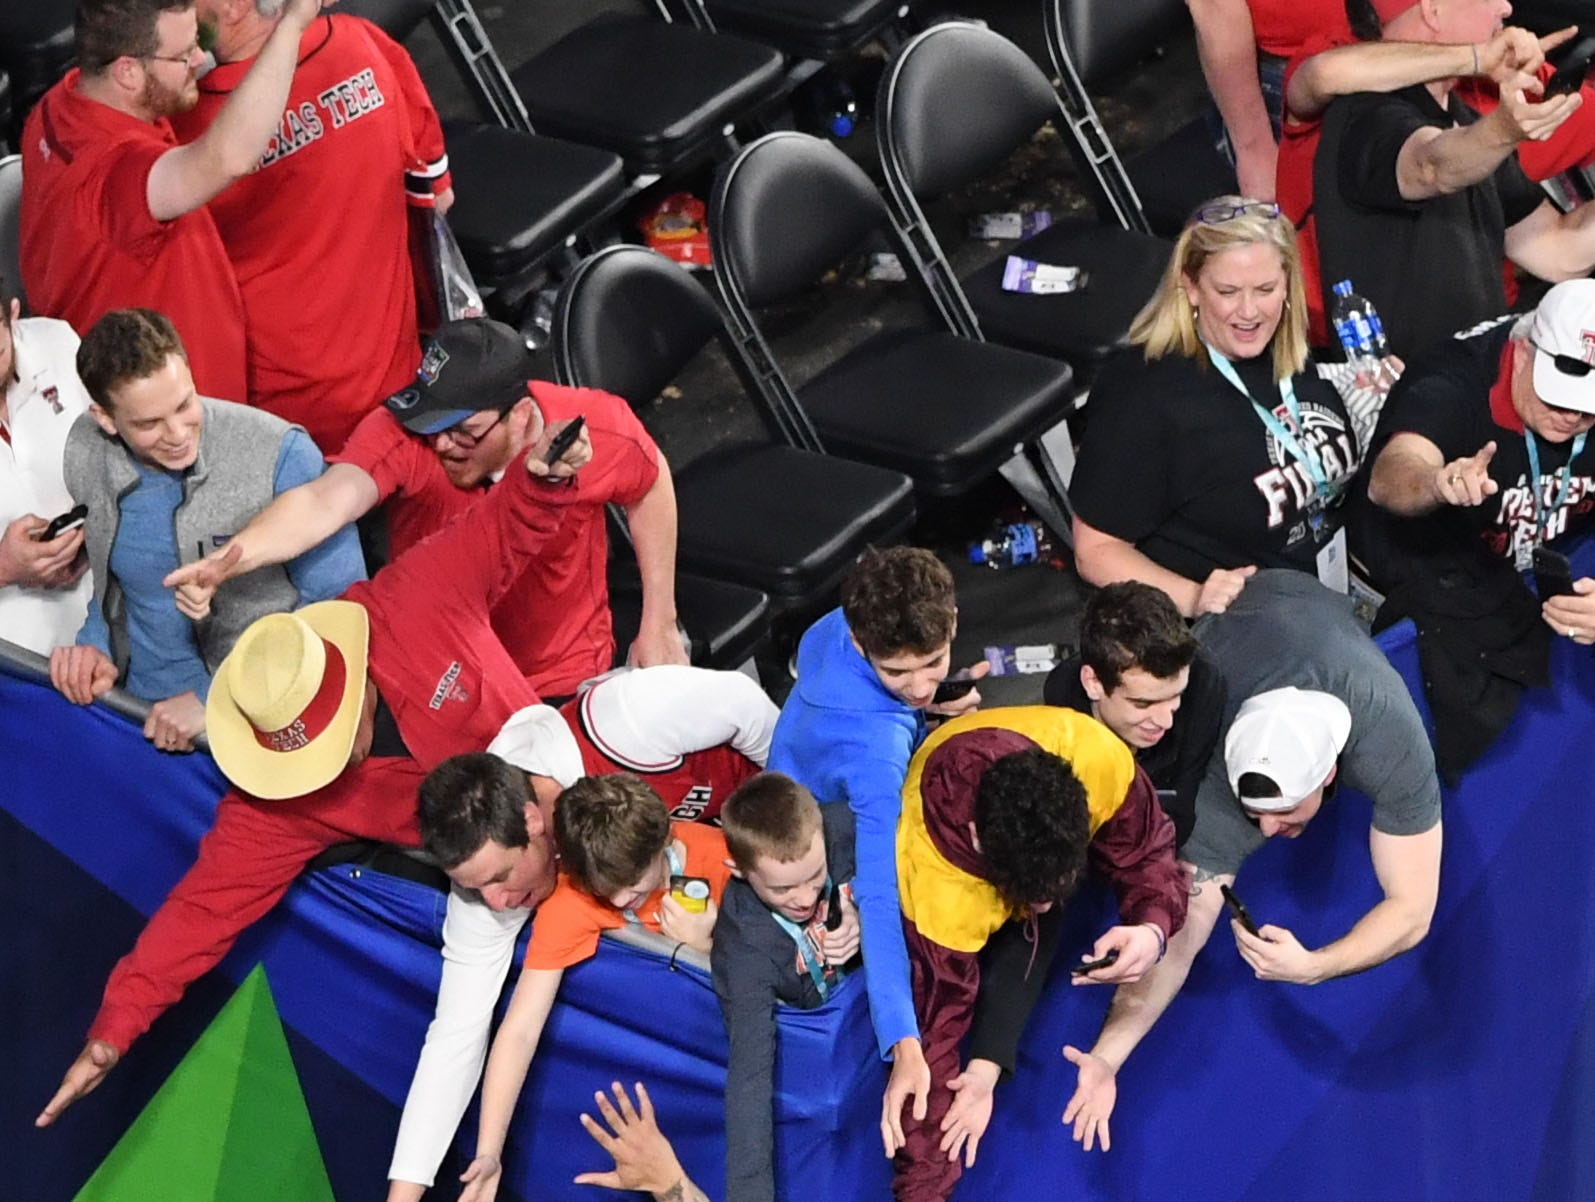 Apr 6, 2019; Minneapolis, MN, USA; Texas Tech Red Raiders guard Brandone Francis (1) greets fans after defeating the Michigan State Spartans in the semifinals of the 2019 men's Final Four at US Bank Stadium. Mandatory Credit: Shanna Lockwood-USA TODAY Sports